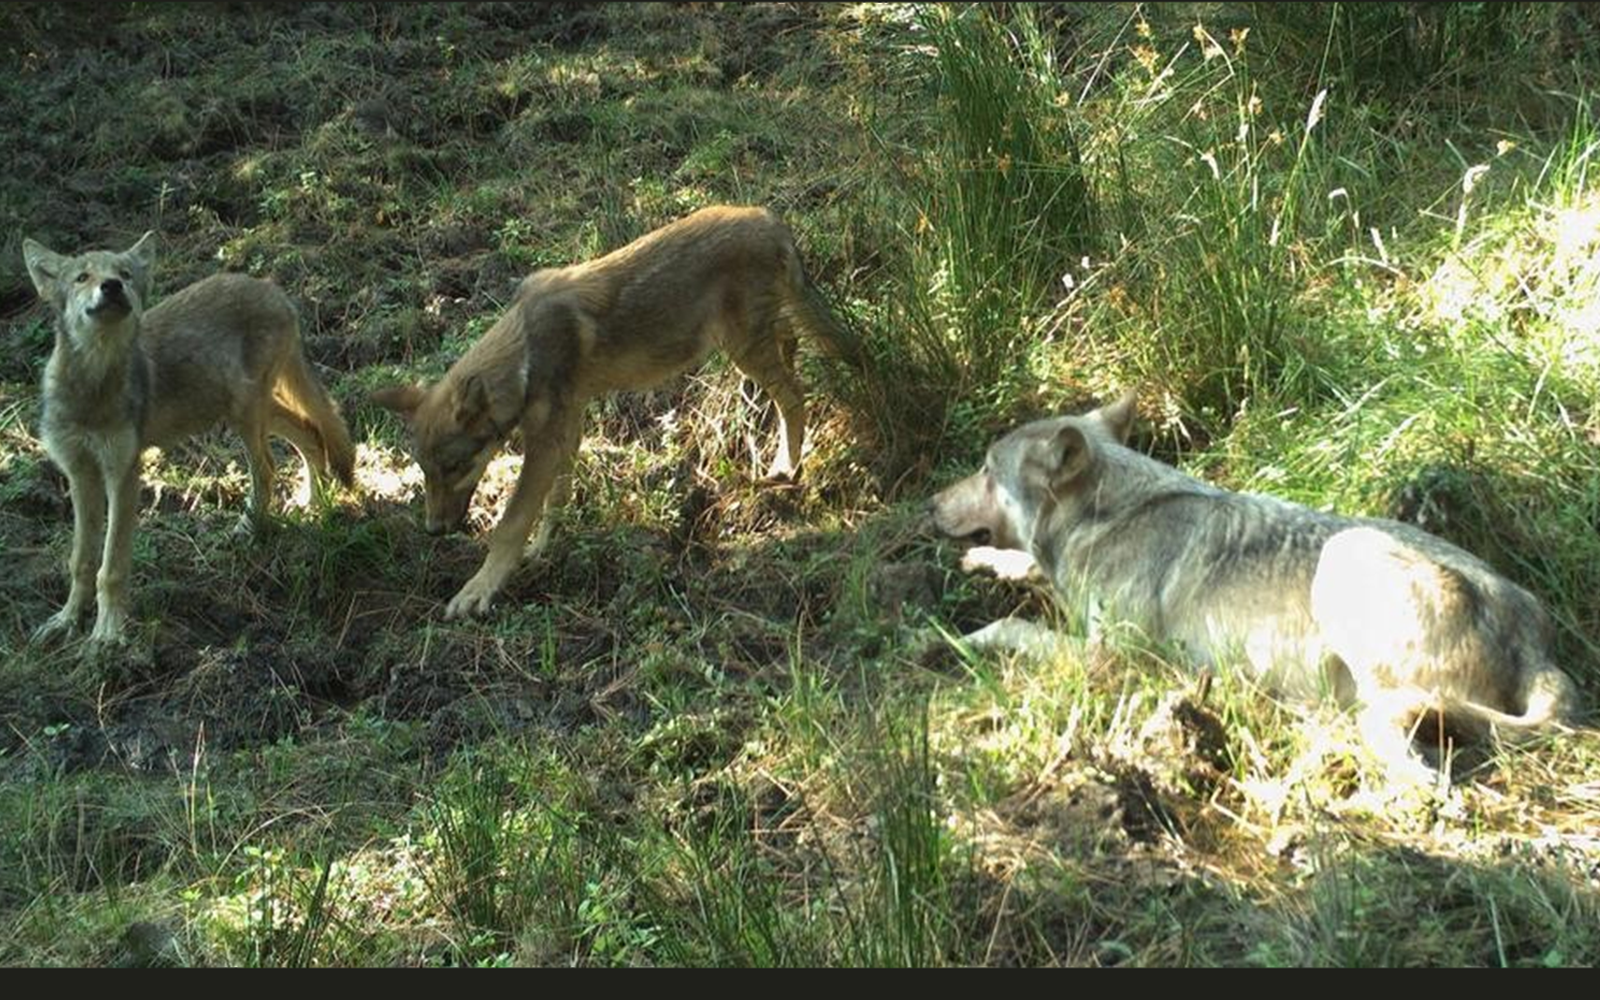 Press Release: Wolf Pups Documented Near Iconic Mt. Hood